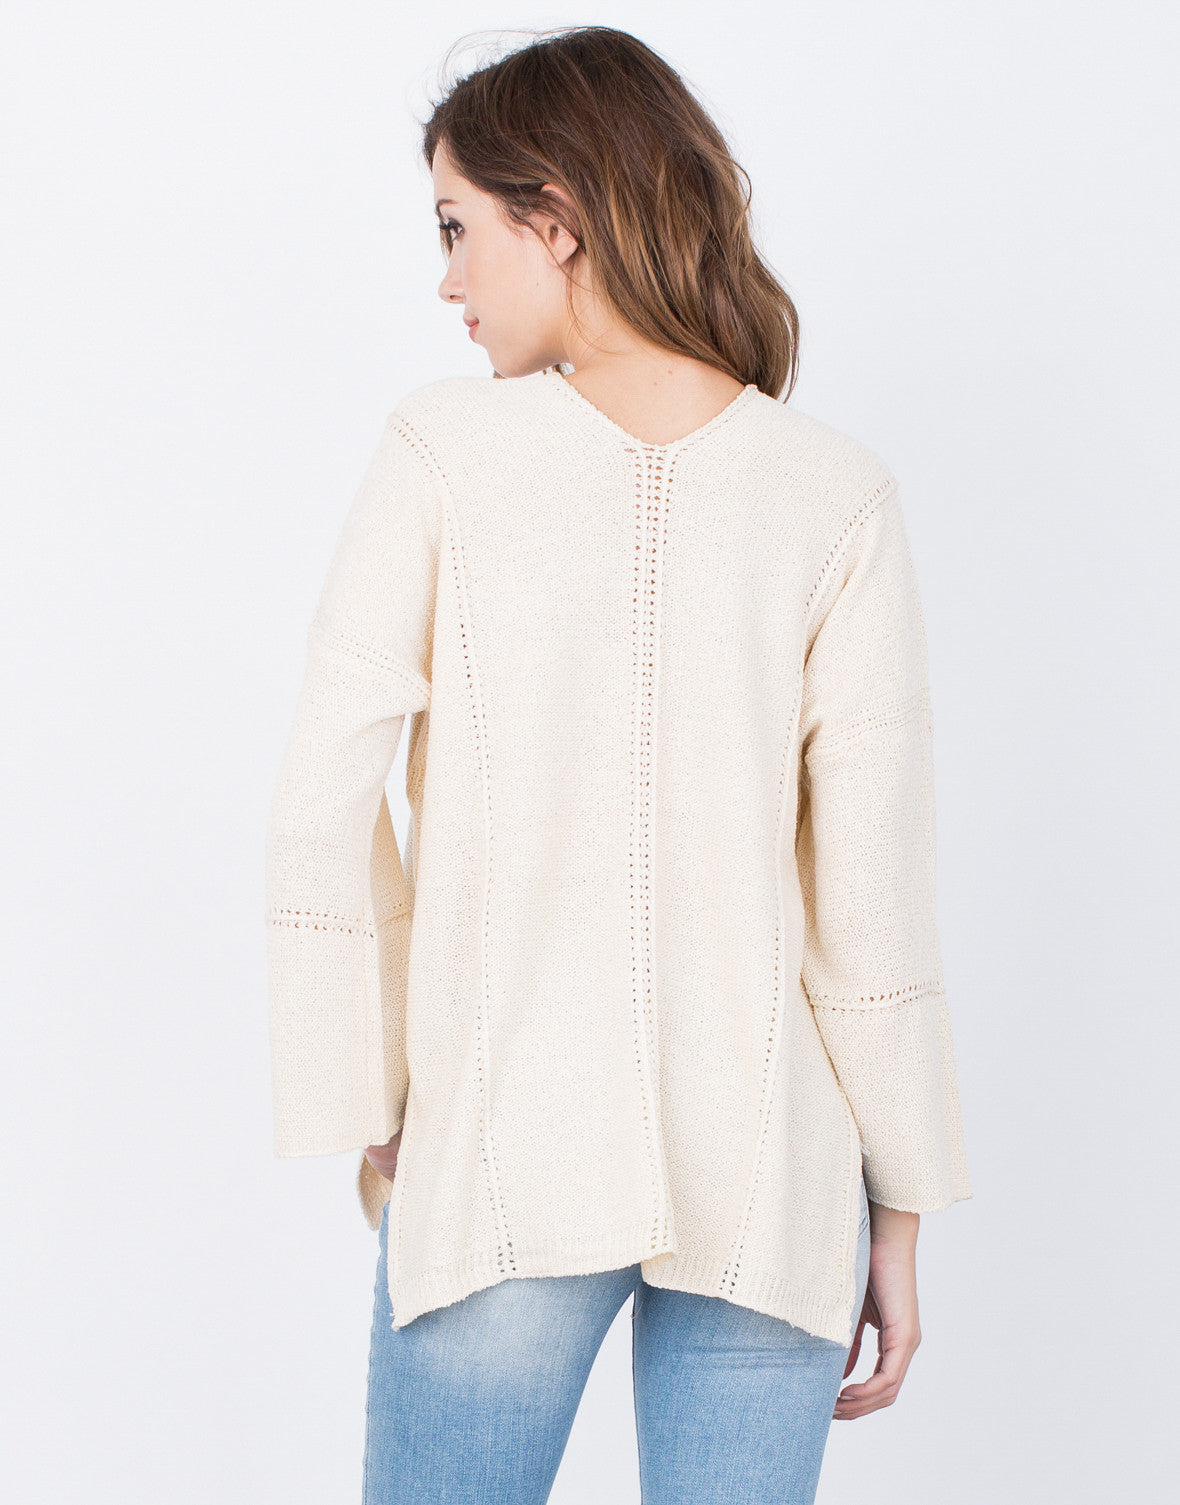 Back View of Lace-Up Sweater Top